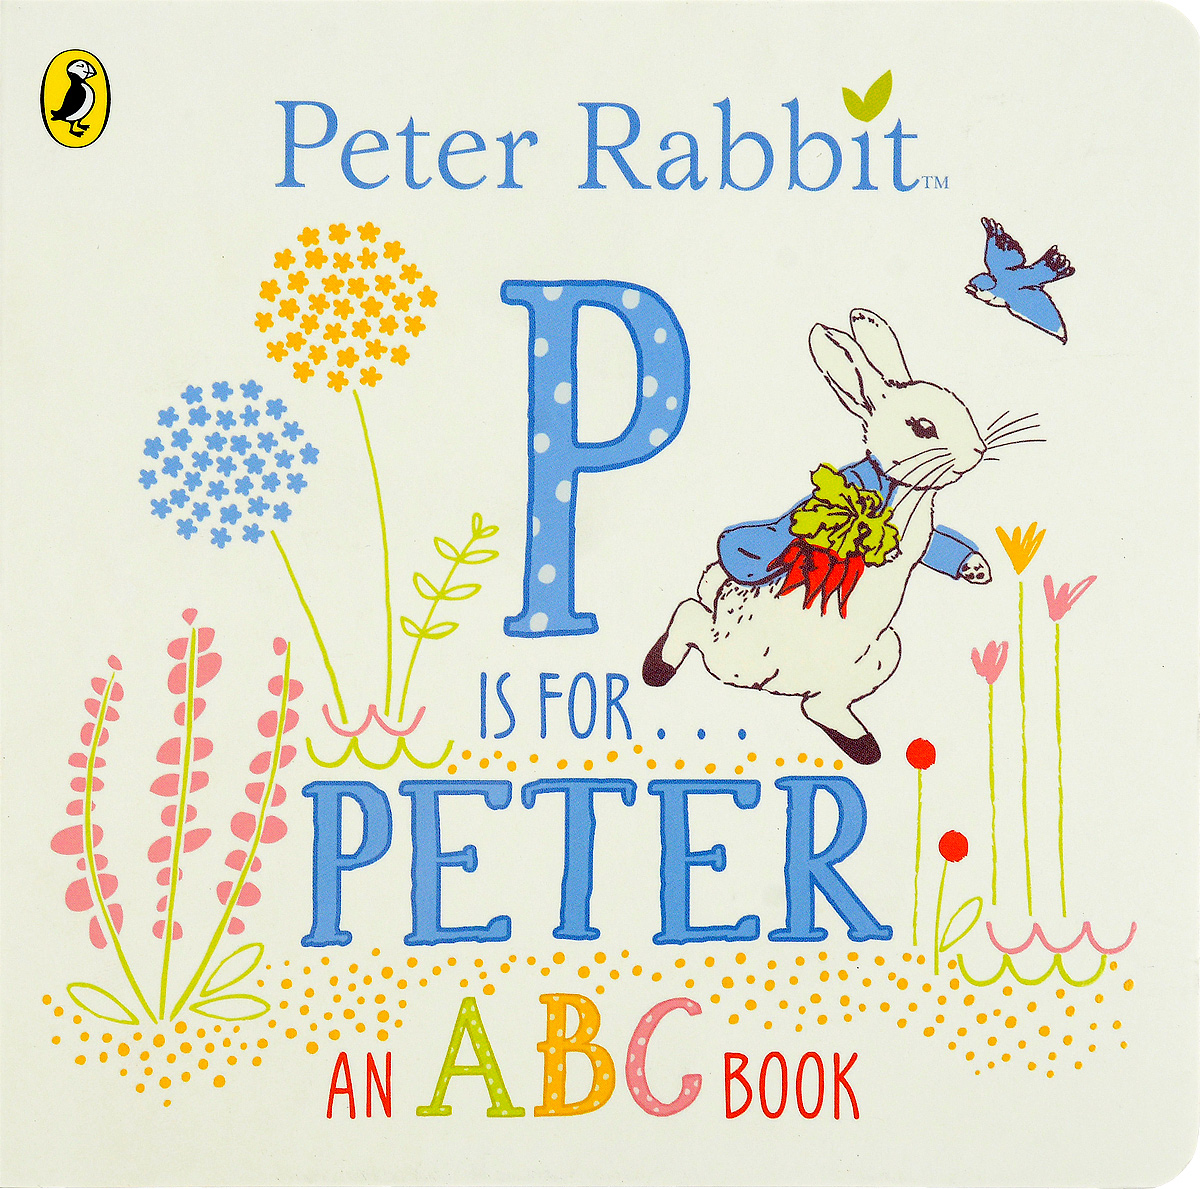 P is for Peter in ABC Book